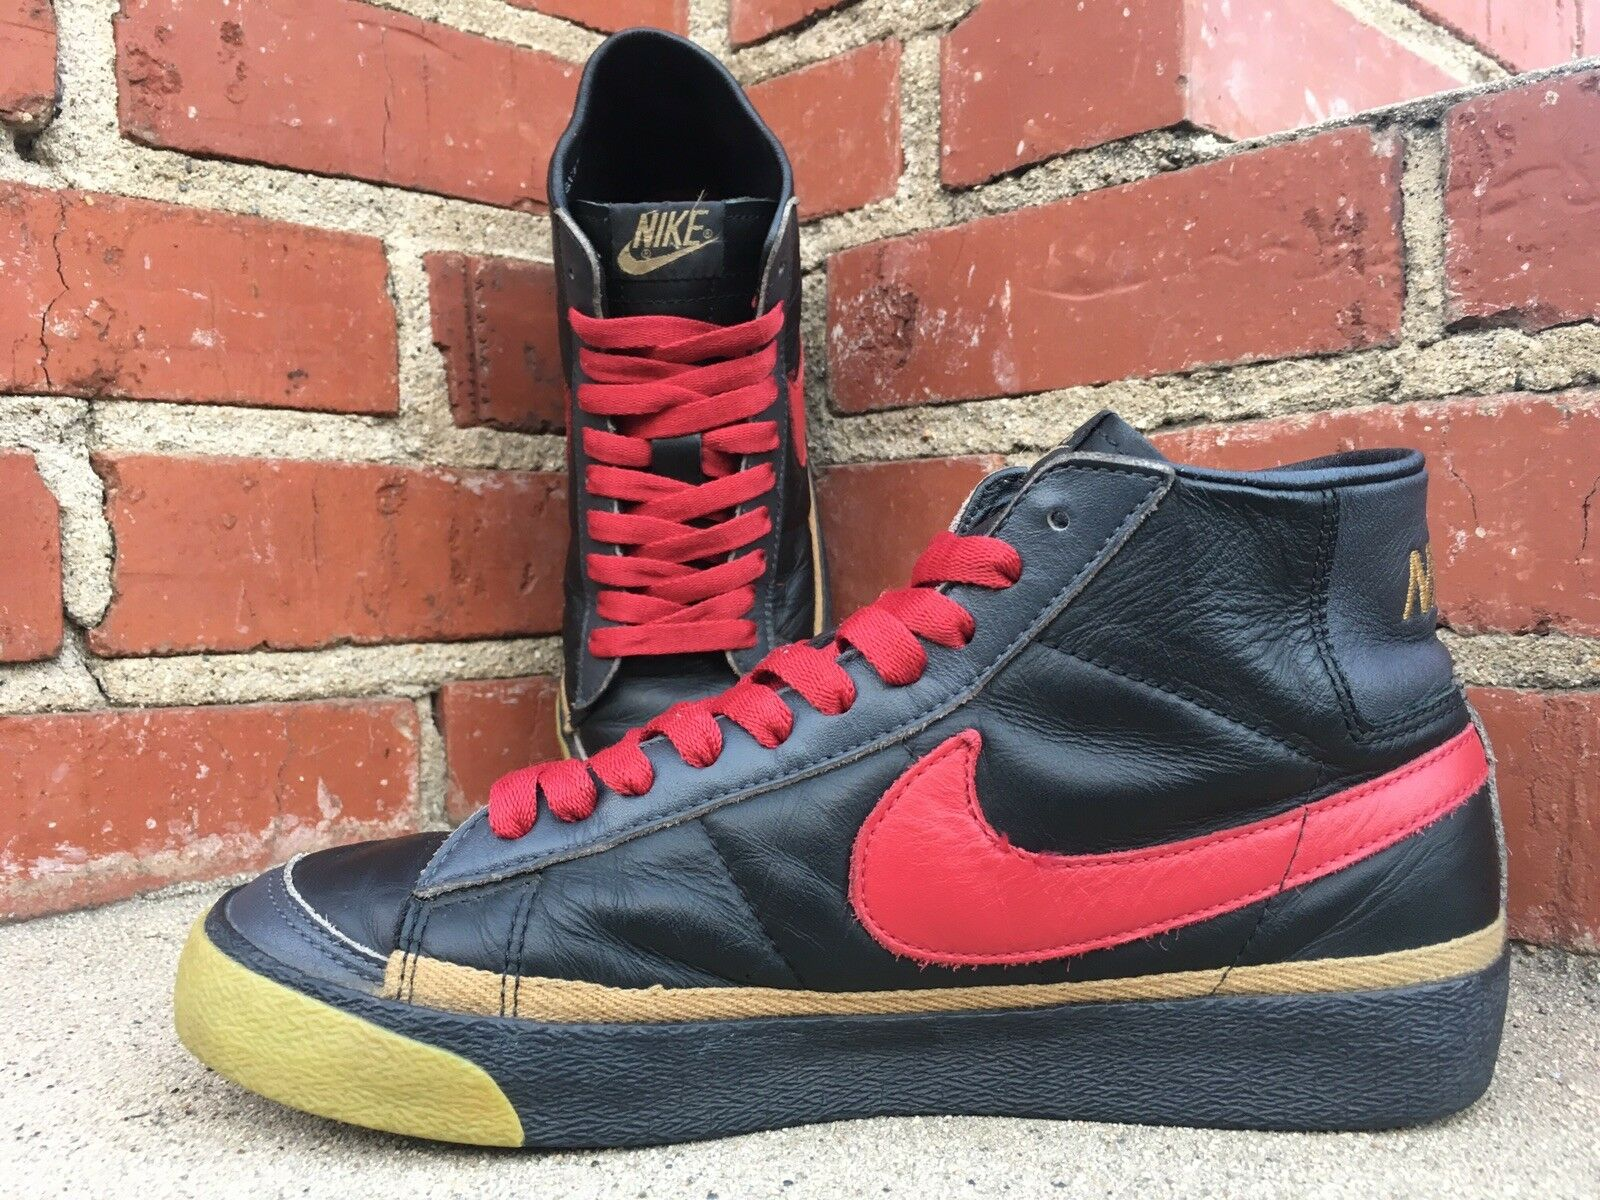 newest 03503 93d38 ... discount code for 2003 nike dunk blazer zoo york mid sneaker. style  306800 061.